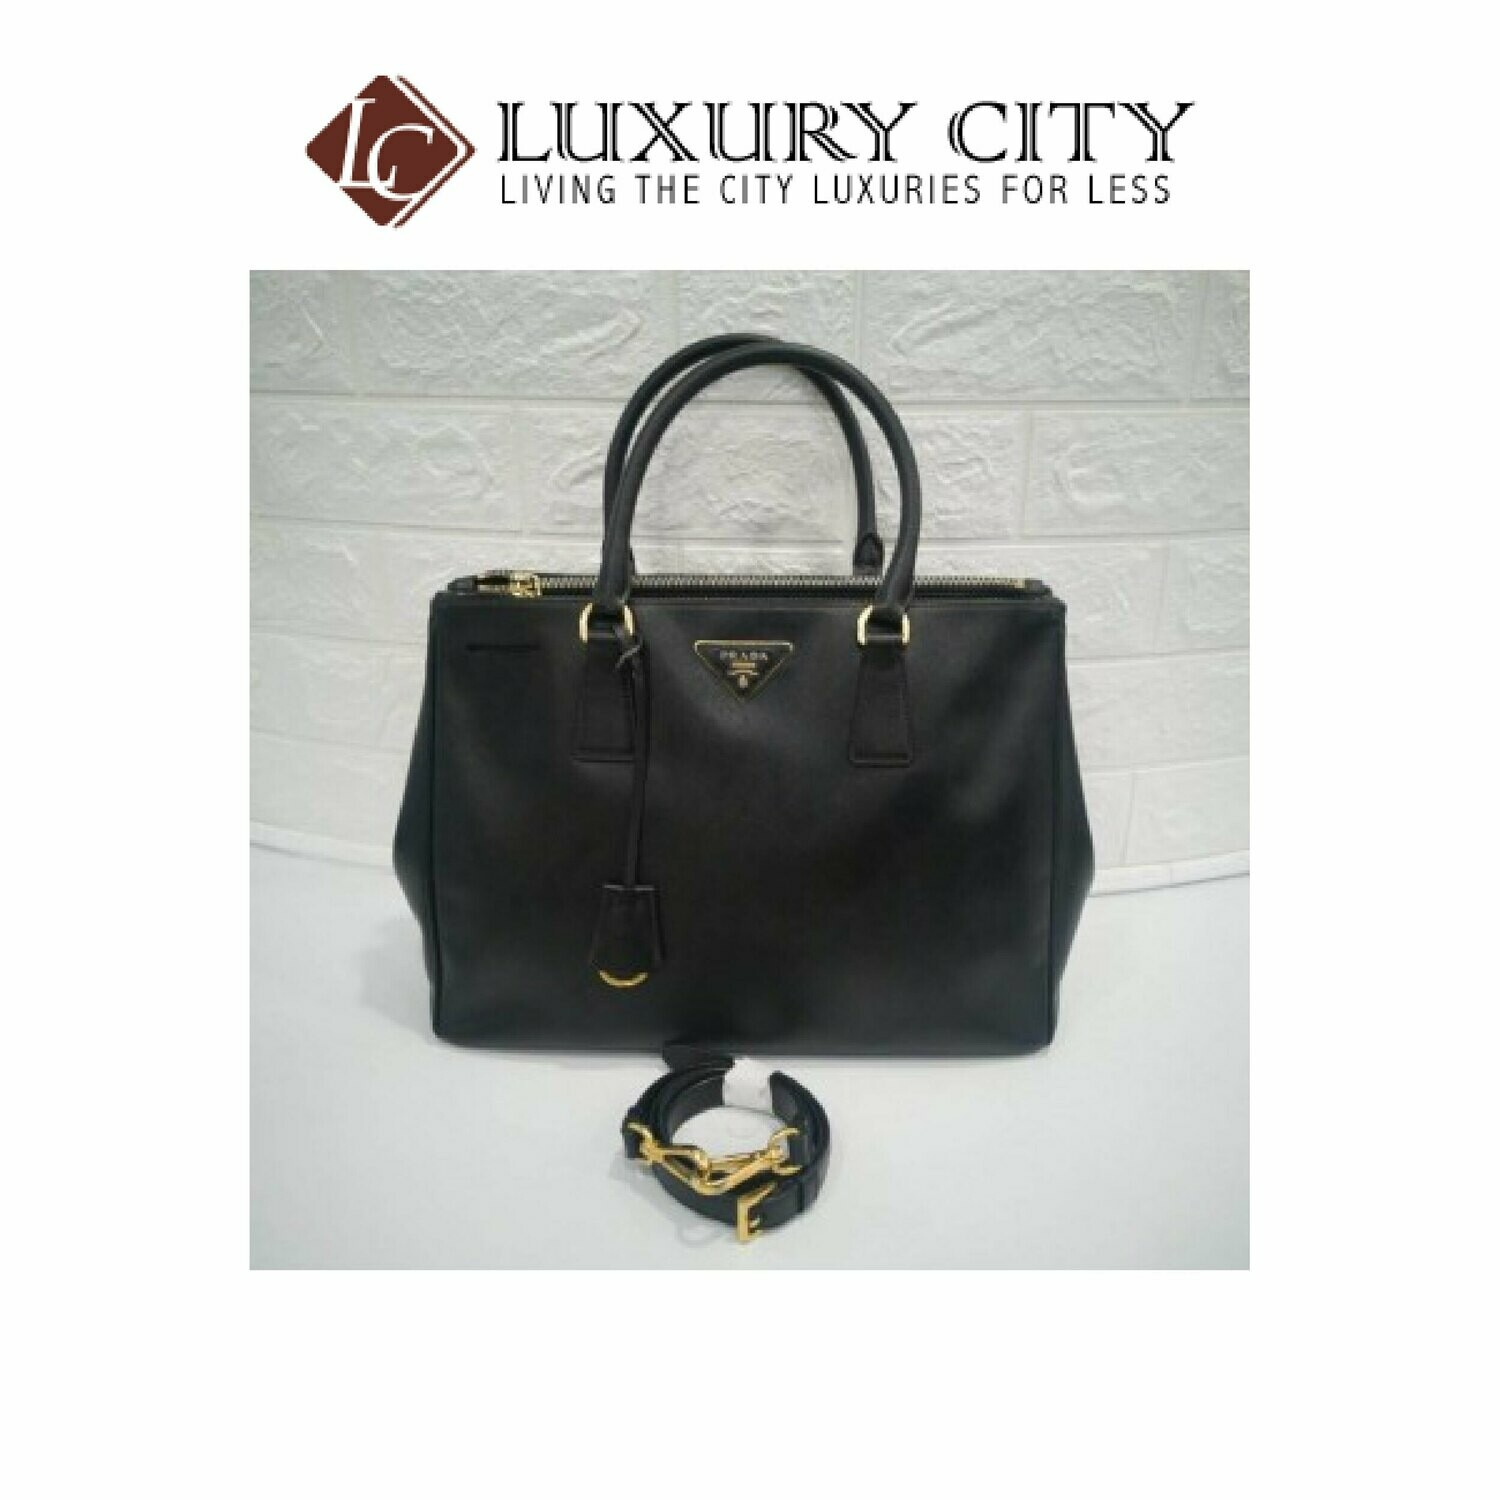 [Luxury City] Preloved Prada Saffiano Galleria M